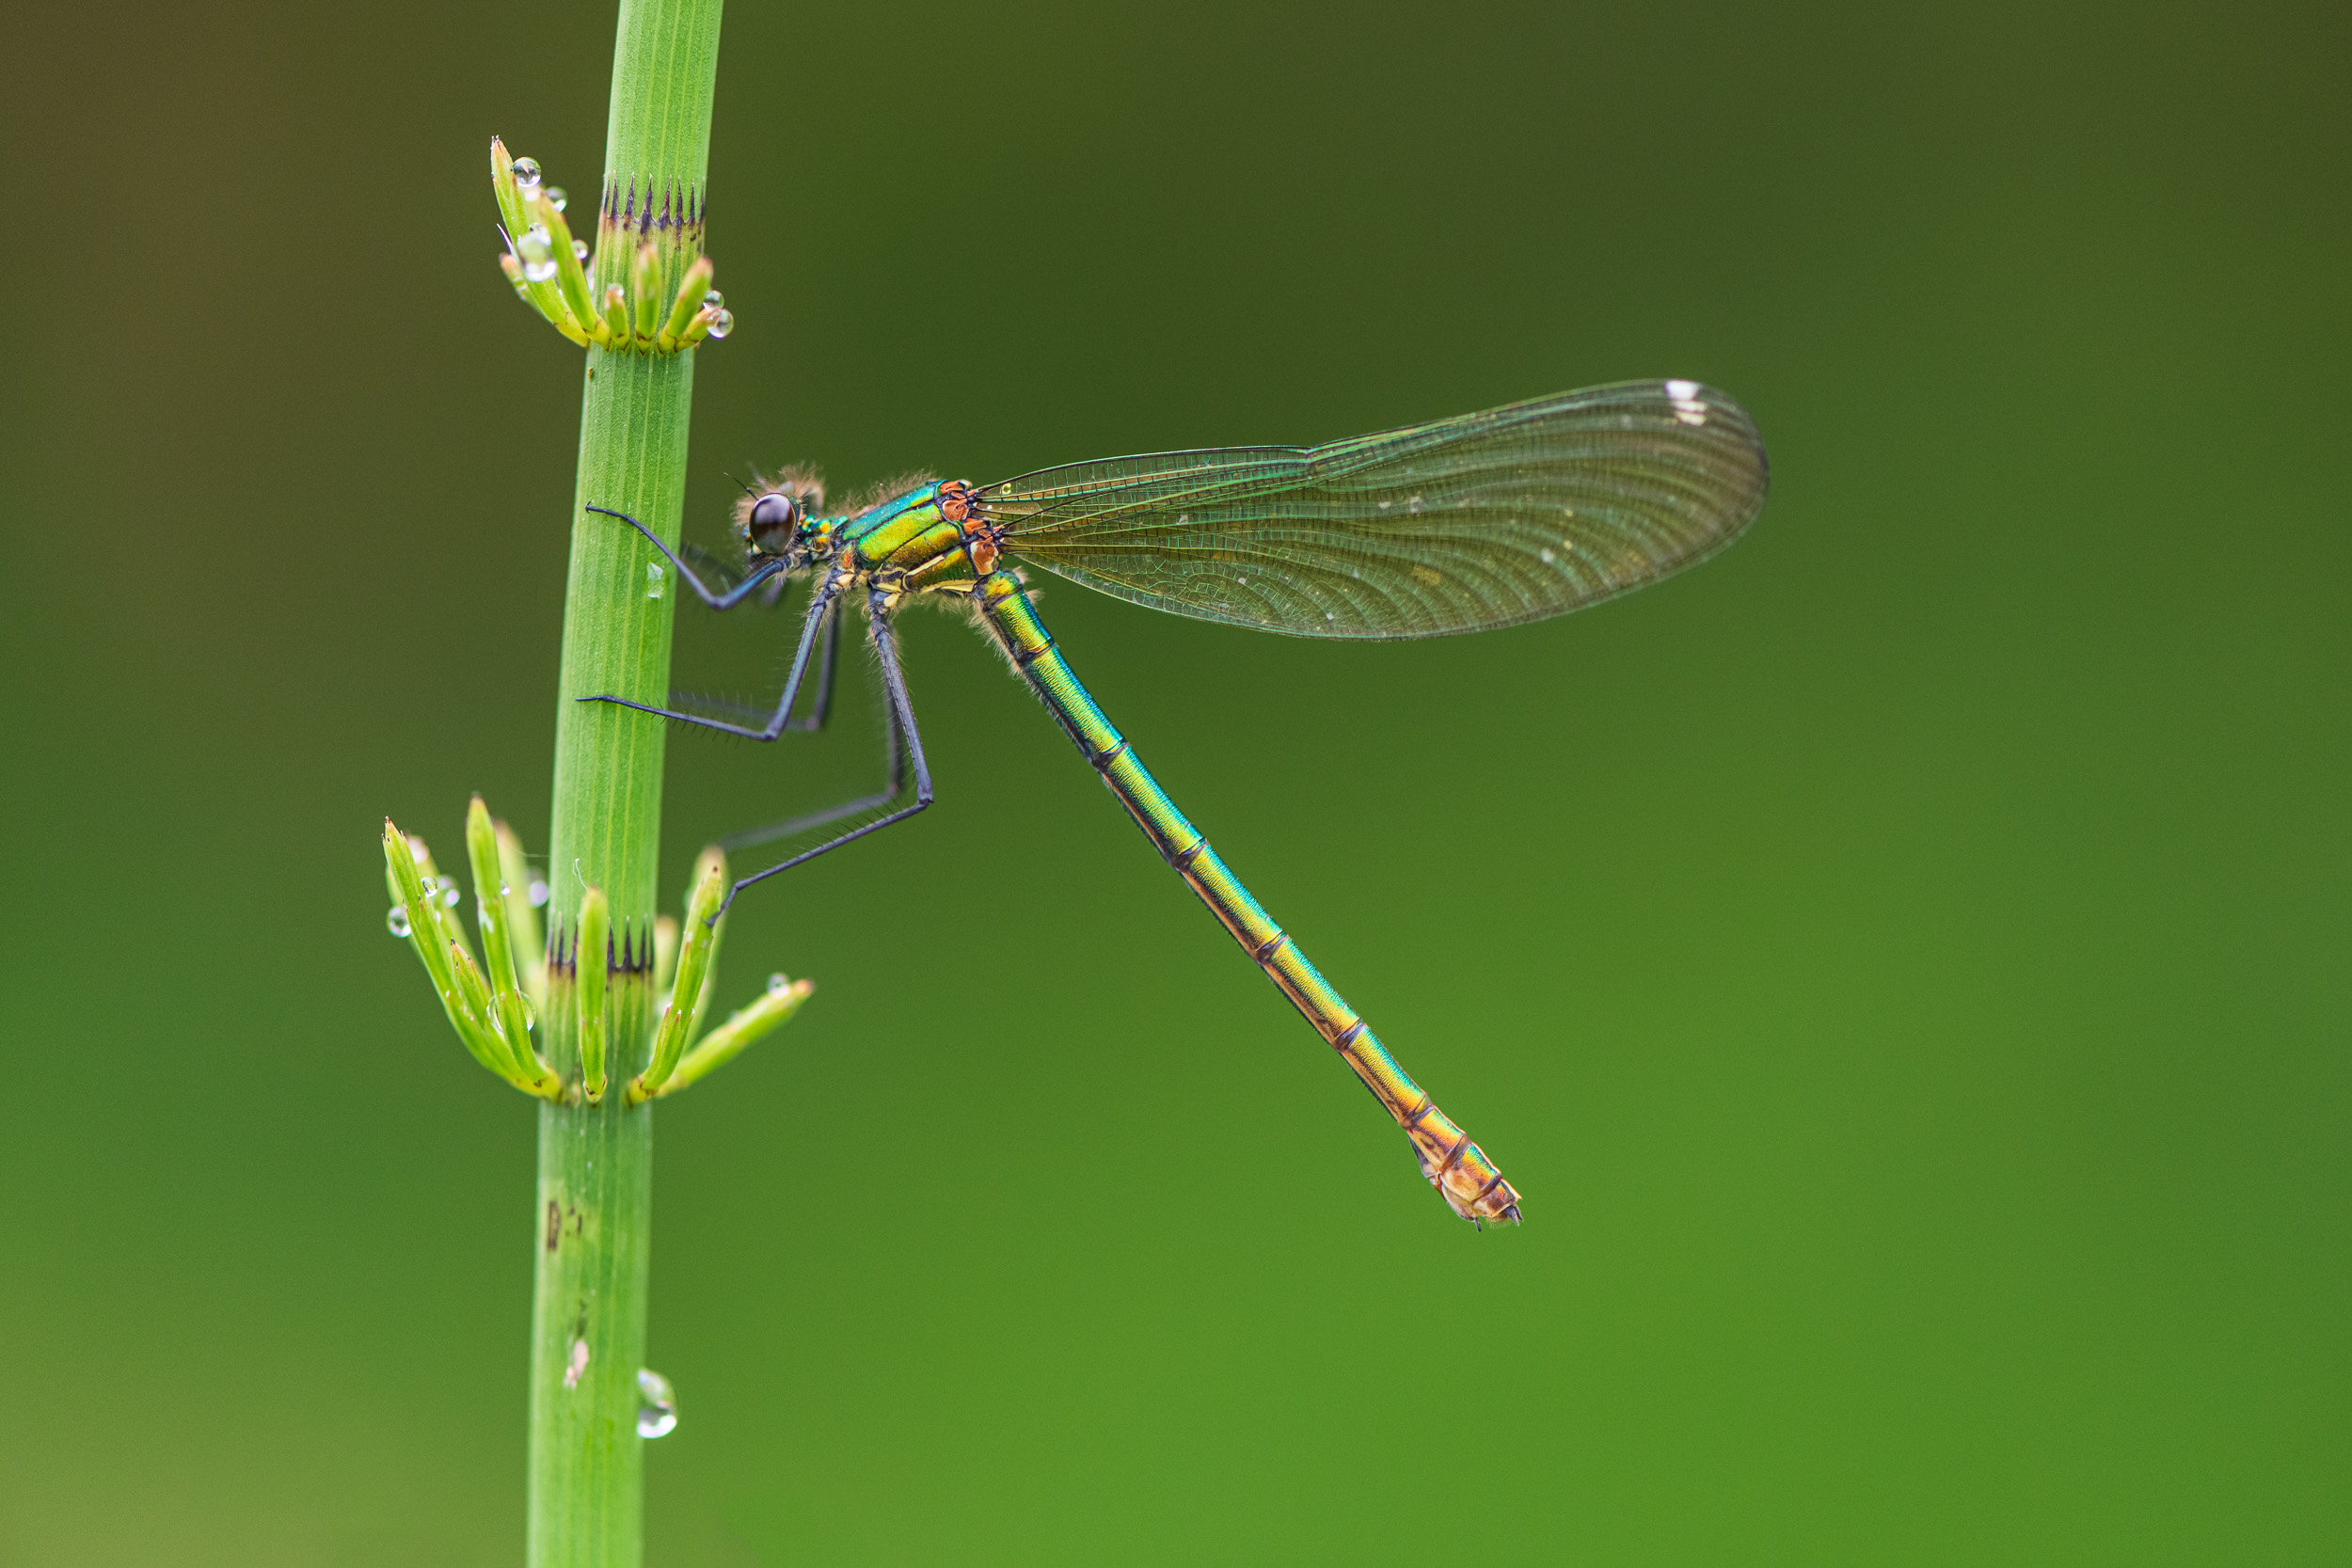 Banded Demoiselle (Calopteryx Splendens), Female - Nikon D850, Nikkor 105mm Macro @ f/4.0, 1/160th second at ISO 800.